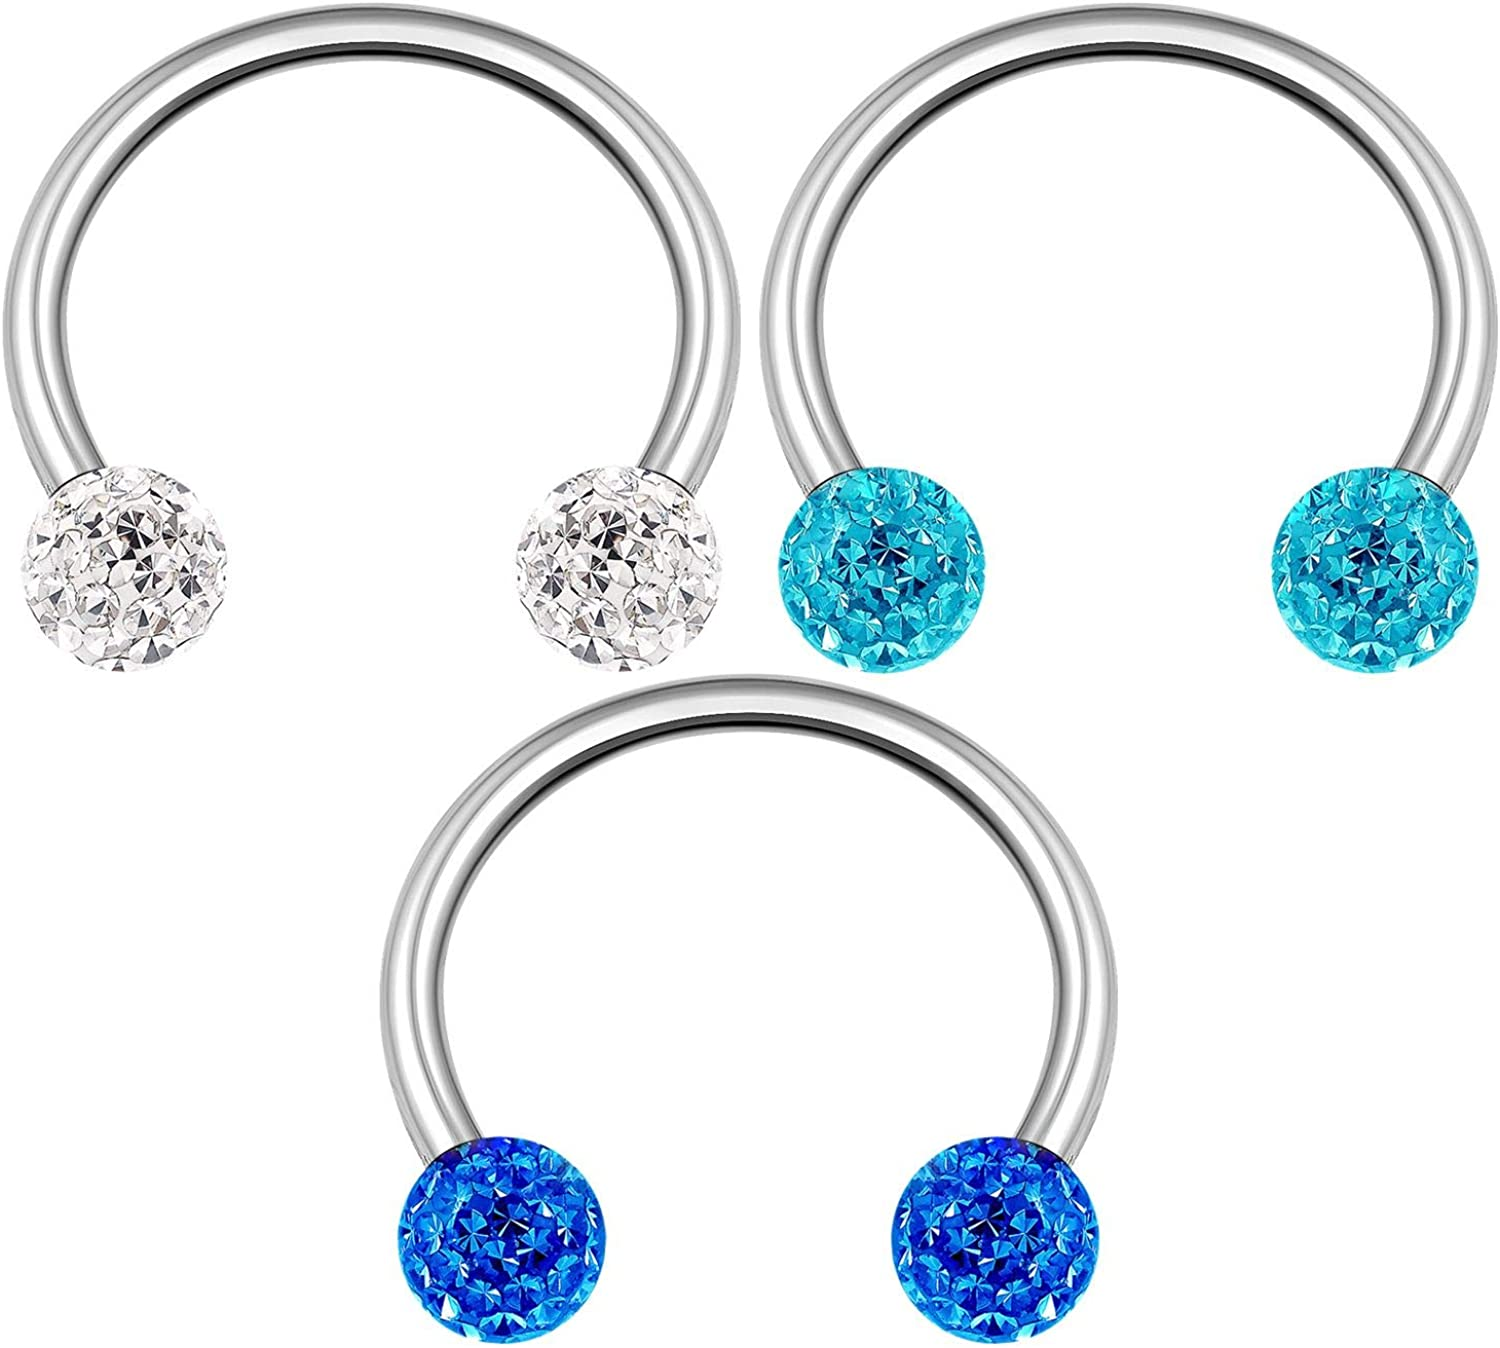 3PCS Stainless Steel Horseshoe Ring 16 Gauge 3mm Crystal Ball Snake Bite Rook Earrings Septum Piercing Jewelry See More Sizes